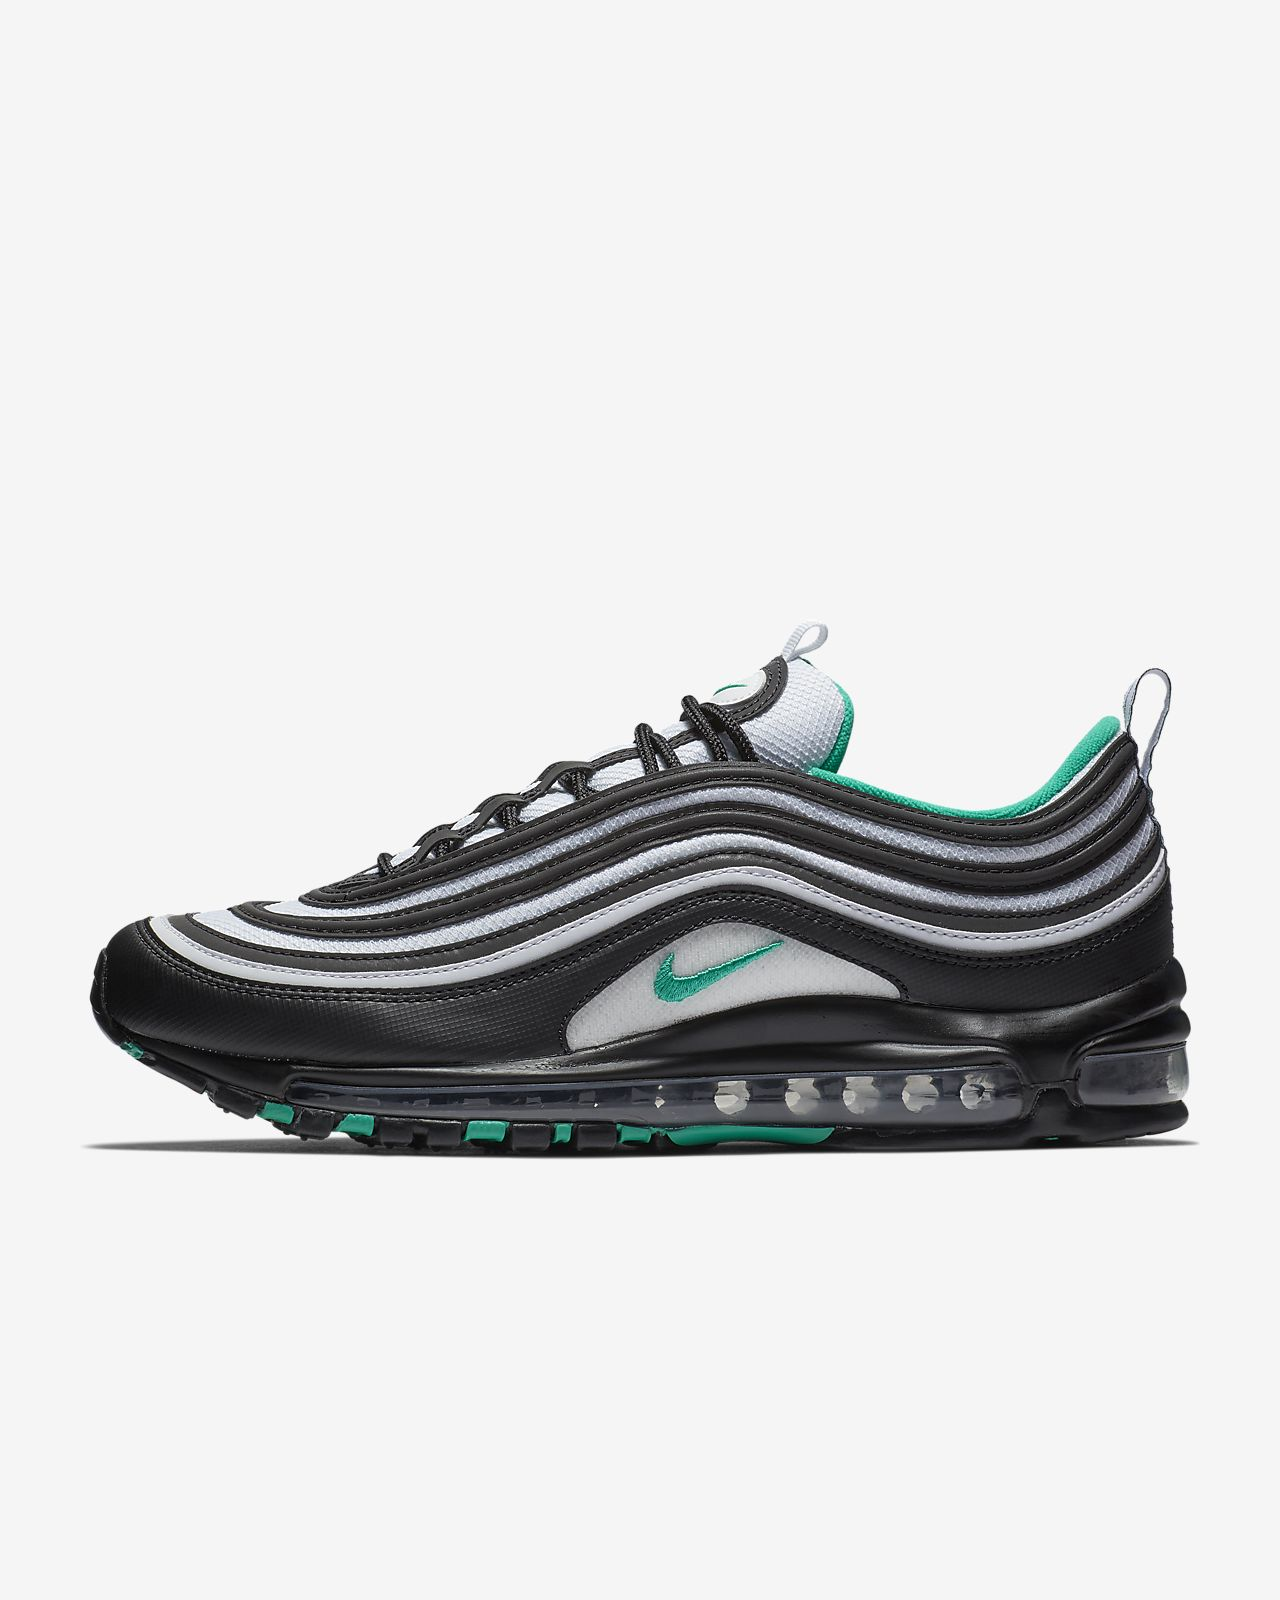 23a7e6f5f2 Nike Air Max 97 Men's Shoe. Nike.com SE